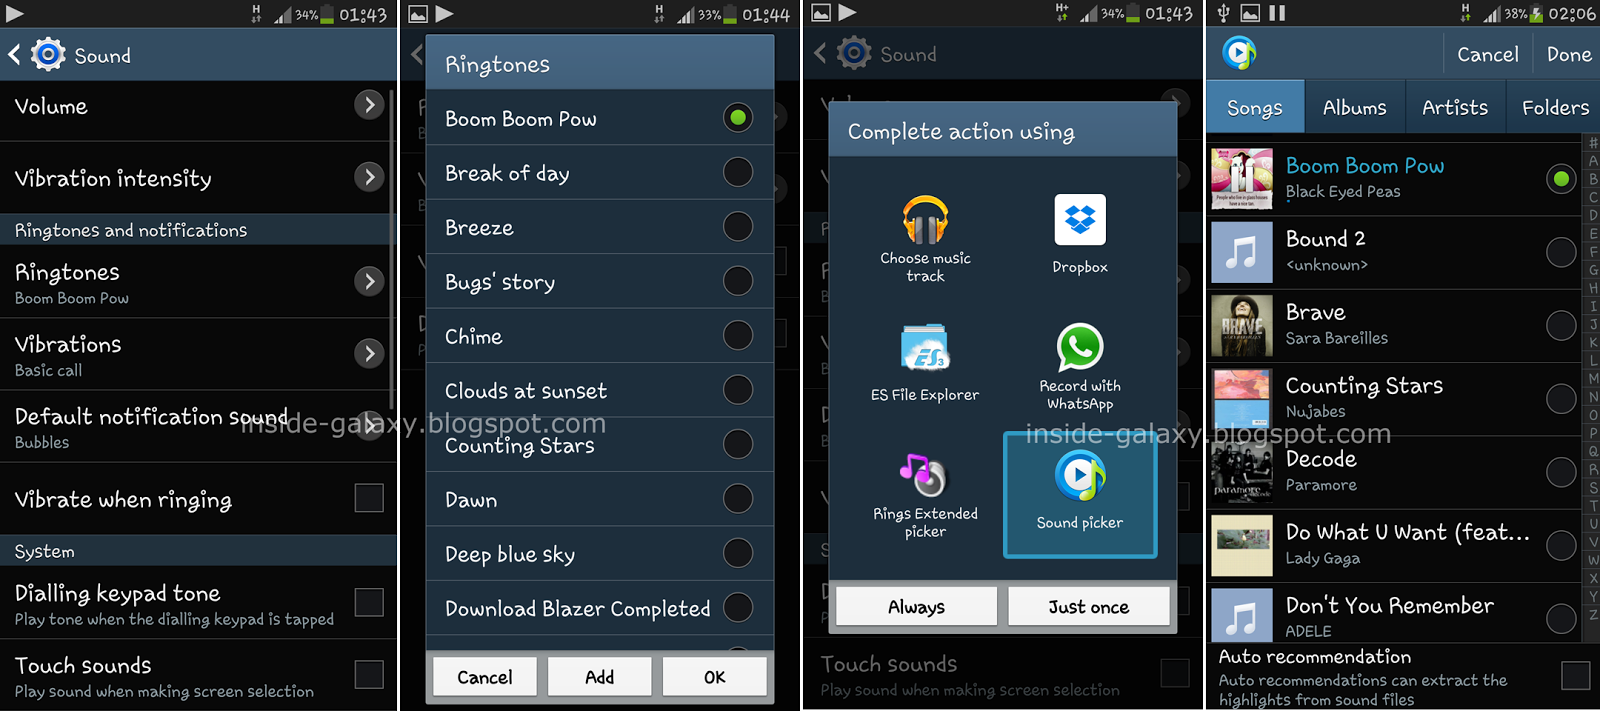 Samsung Galaxy S4: How to Change Ringtone with Two Easy Ways